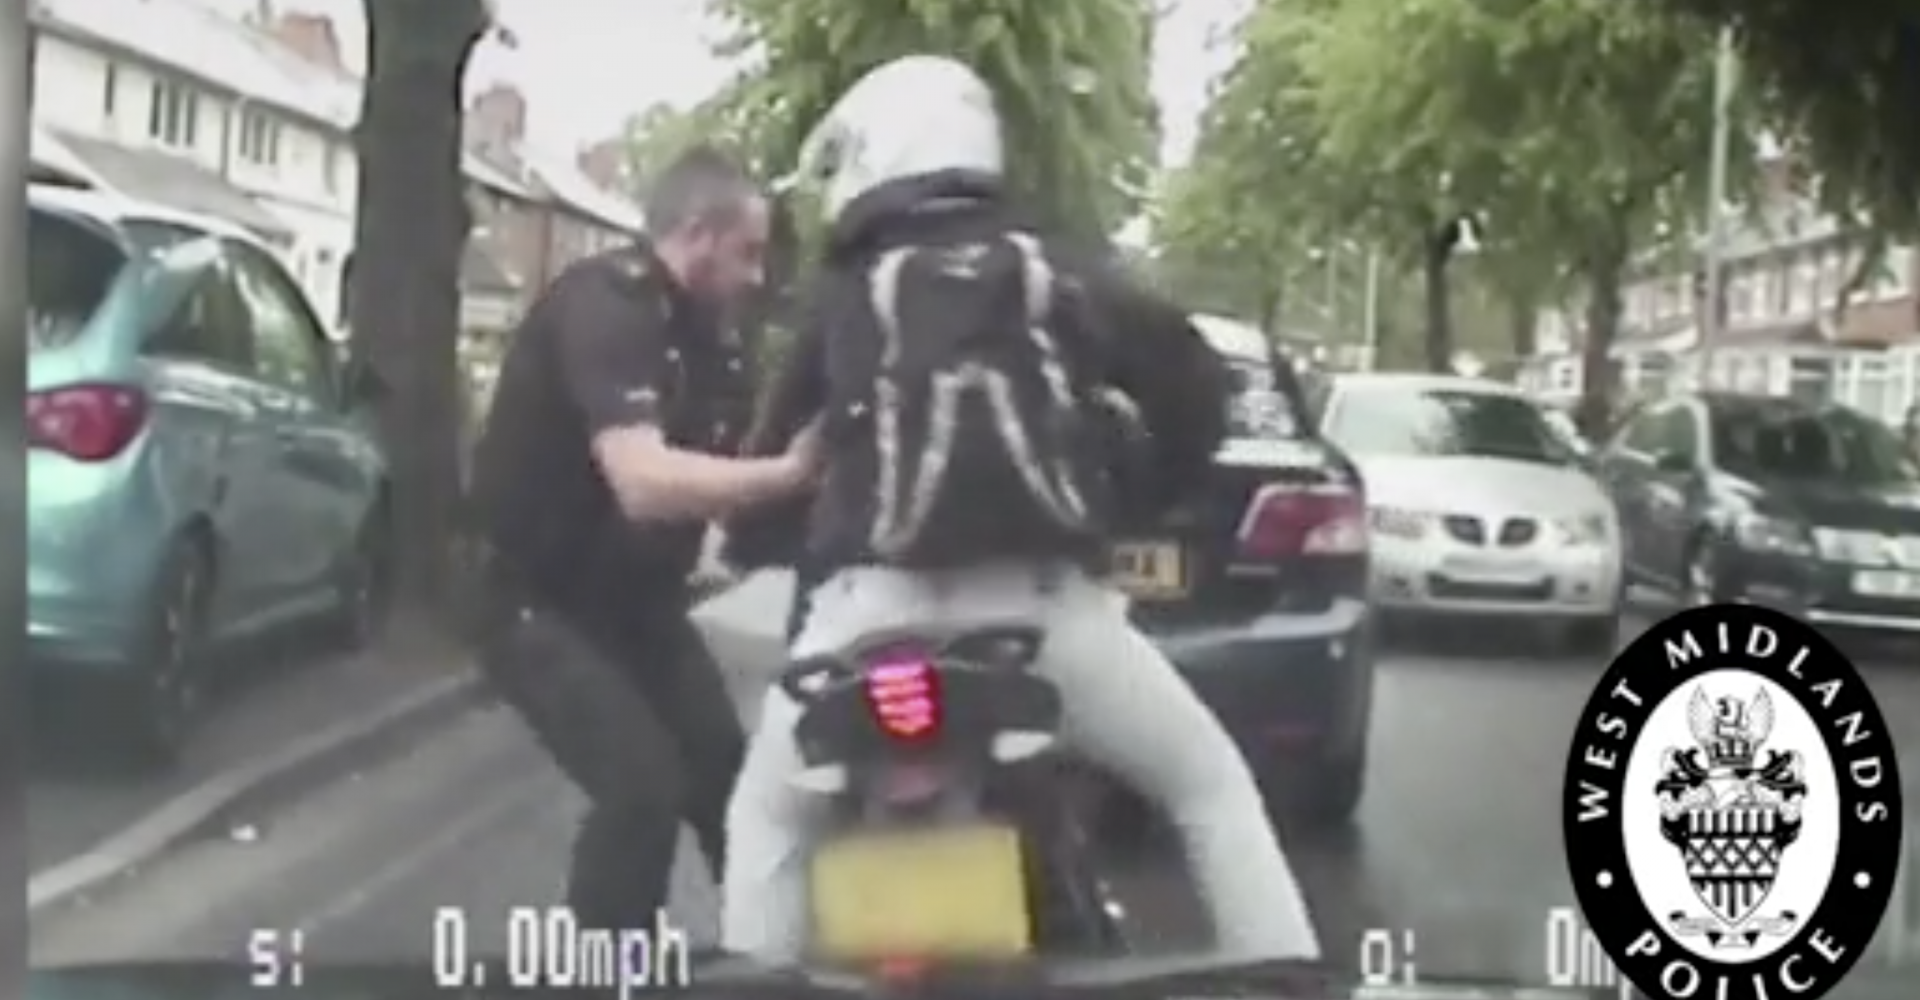 Quick-thinking cop yanks motorbike thief off his stolen ride